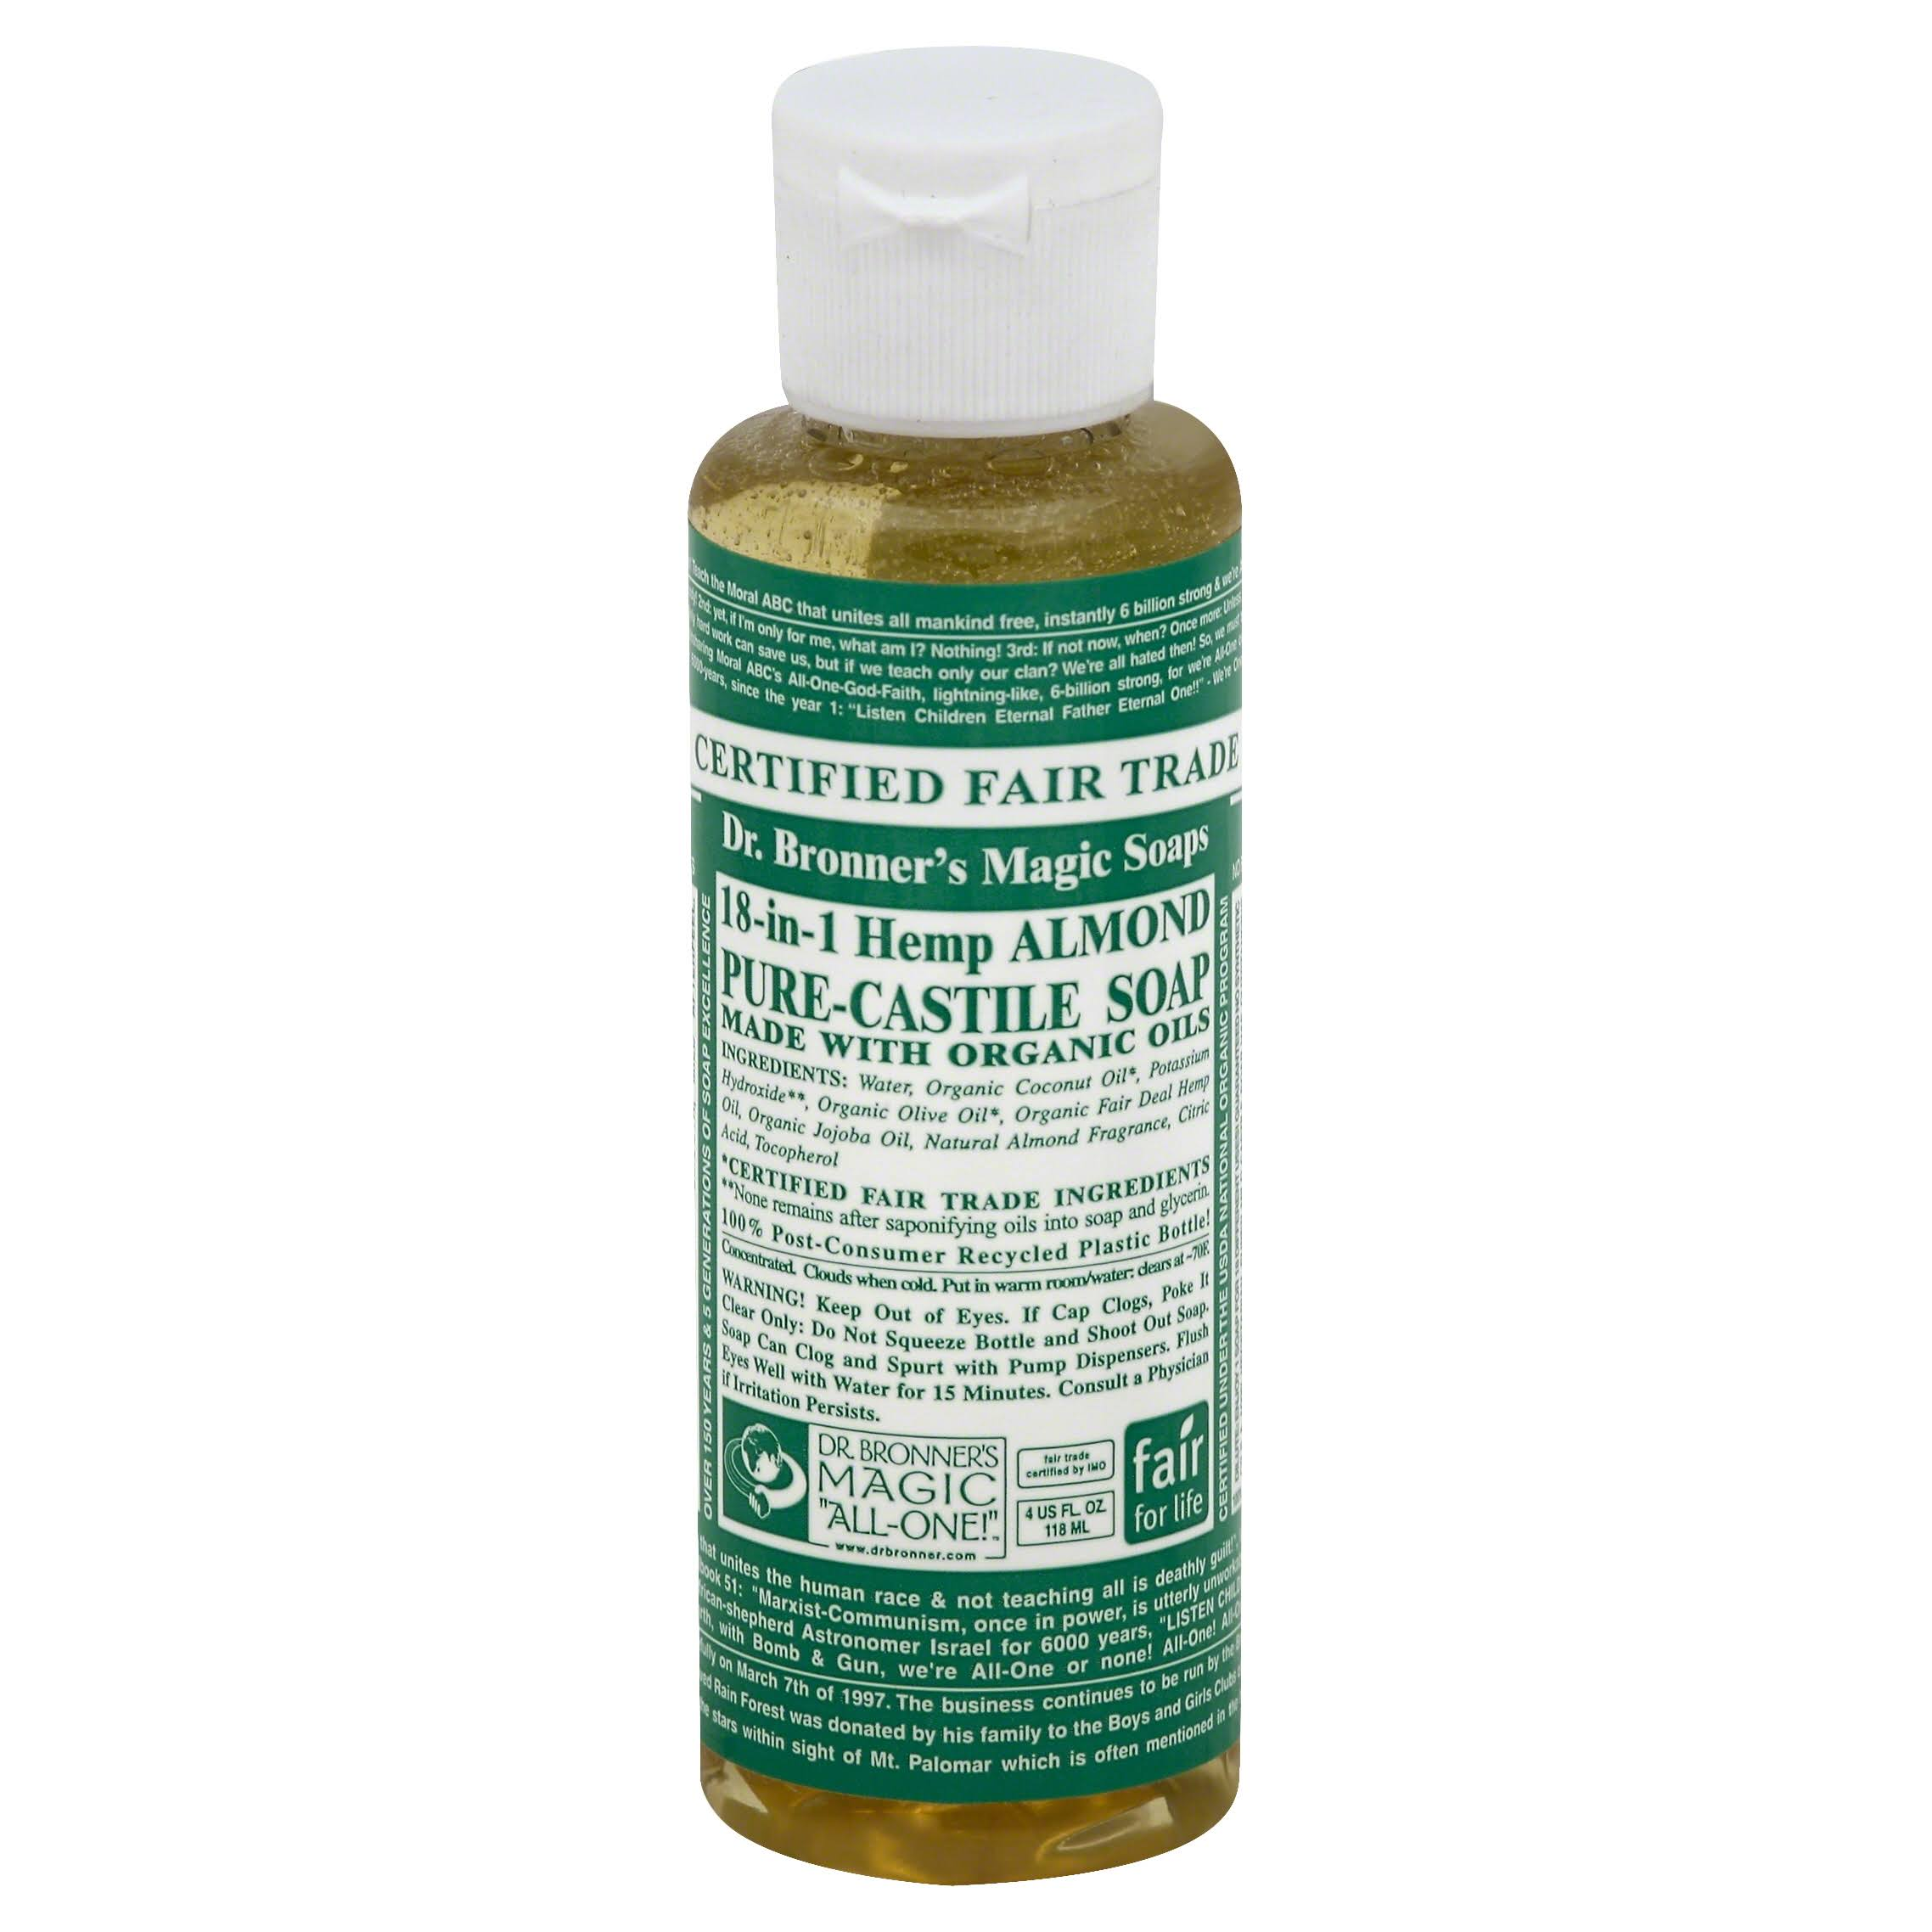 Dr. Bronner's Magic Soaps Pure-Castile Soap 18-in-1 Hemp - Almond